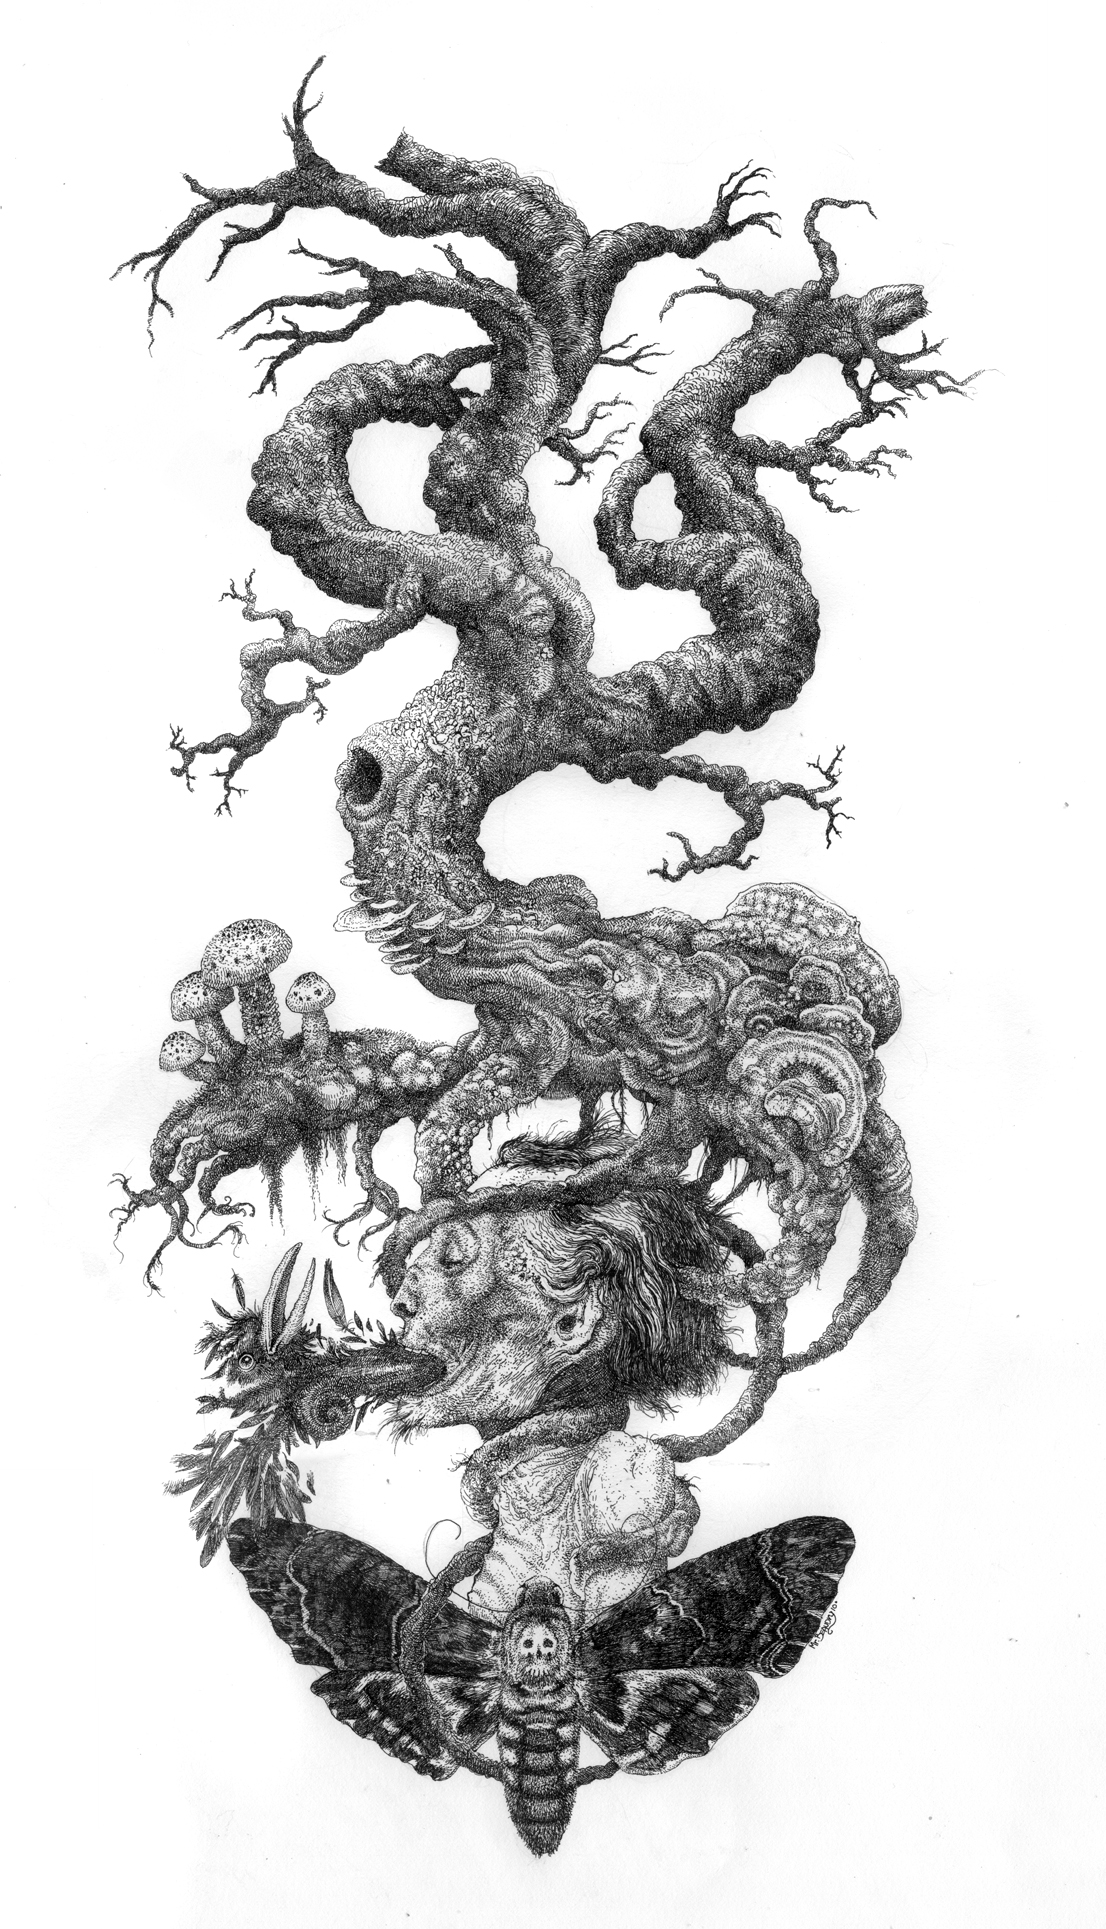 The Tree of Death by urielstempest